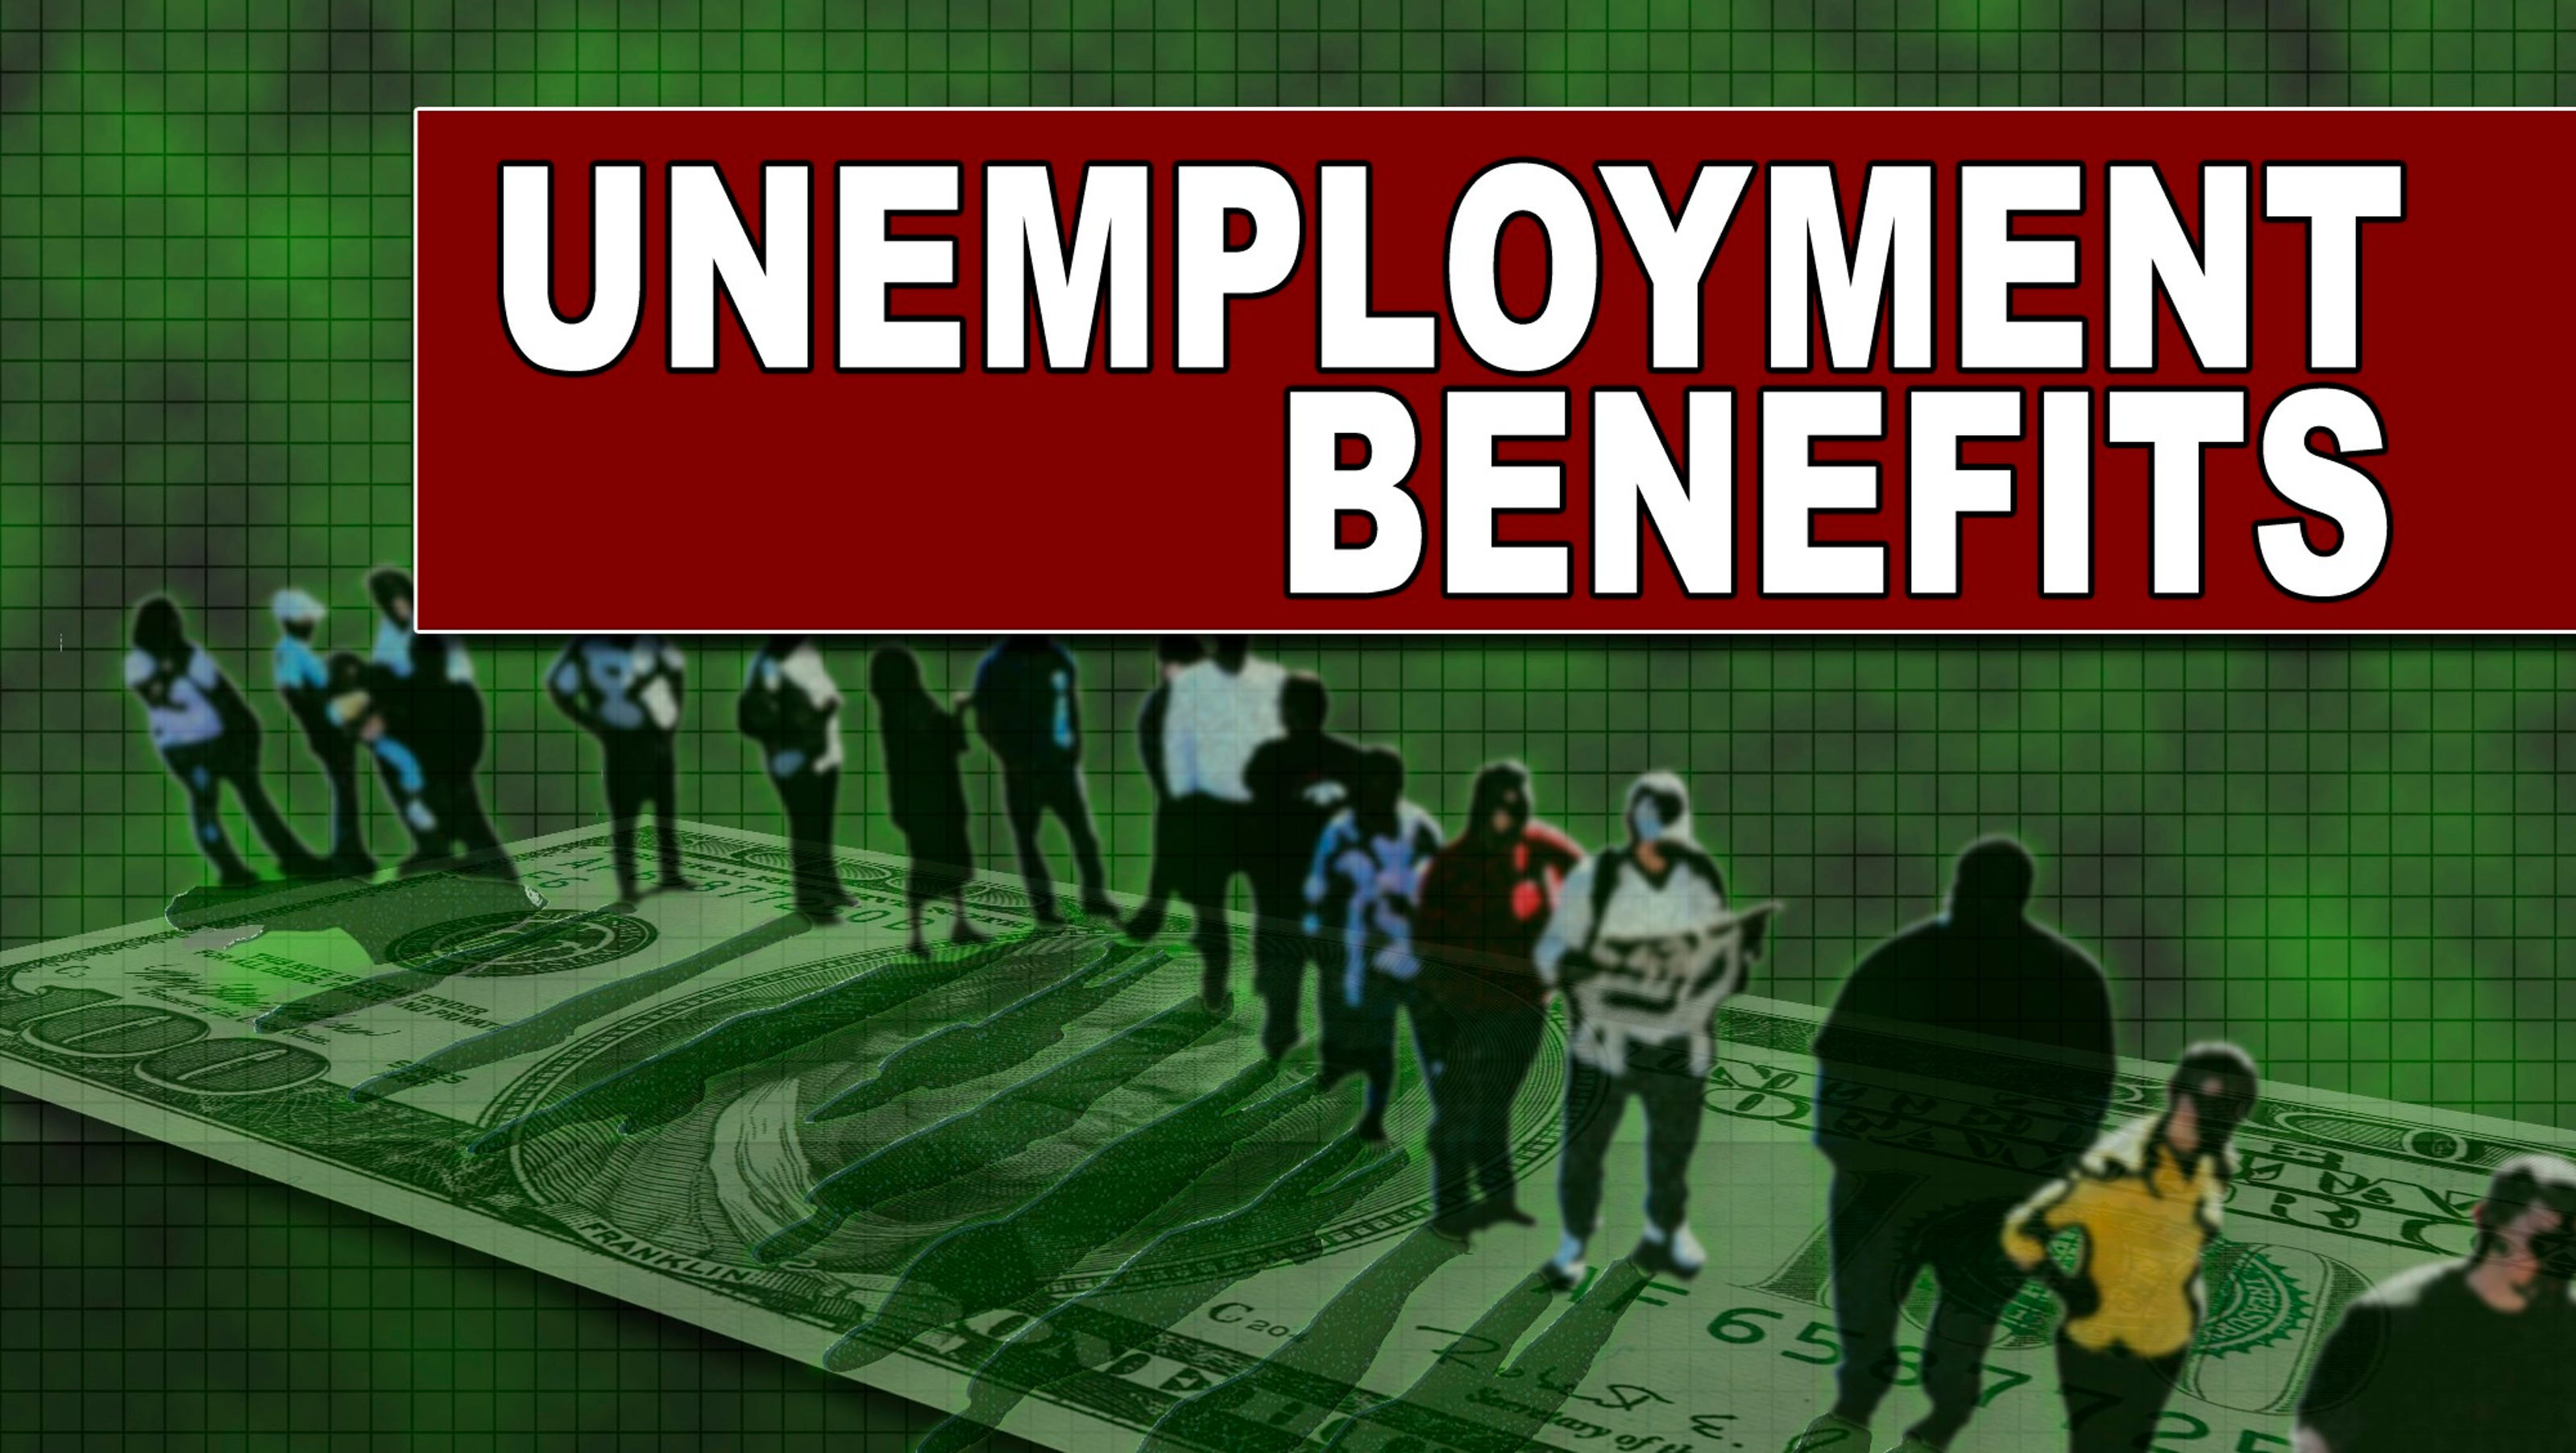 Benefits Hd Desktop Backgrounds Unemployment Benefits ...